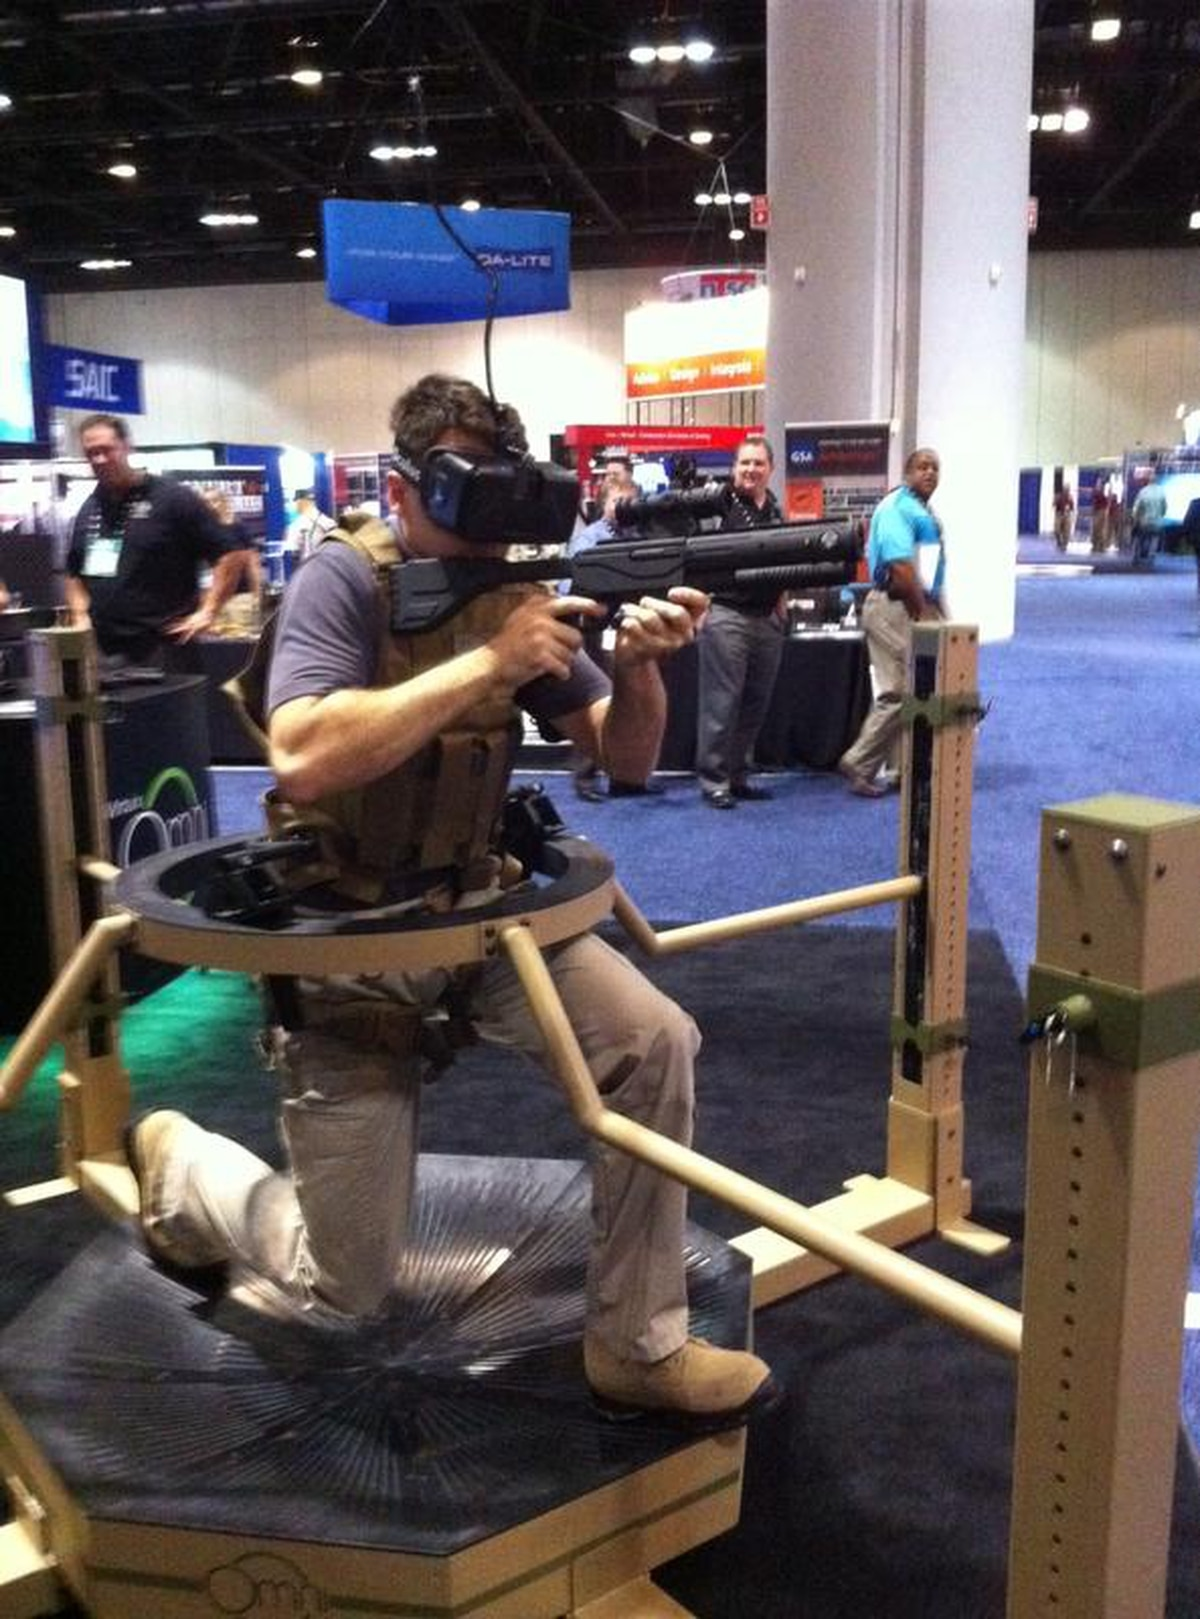 Virtual Trainer Lets Troops Move In Simulated World